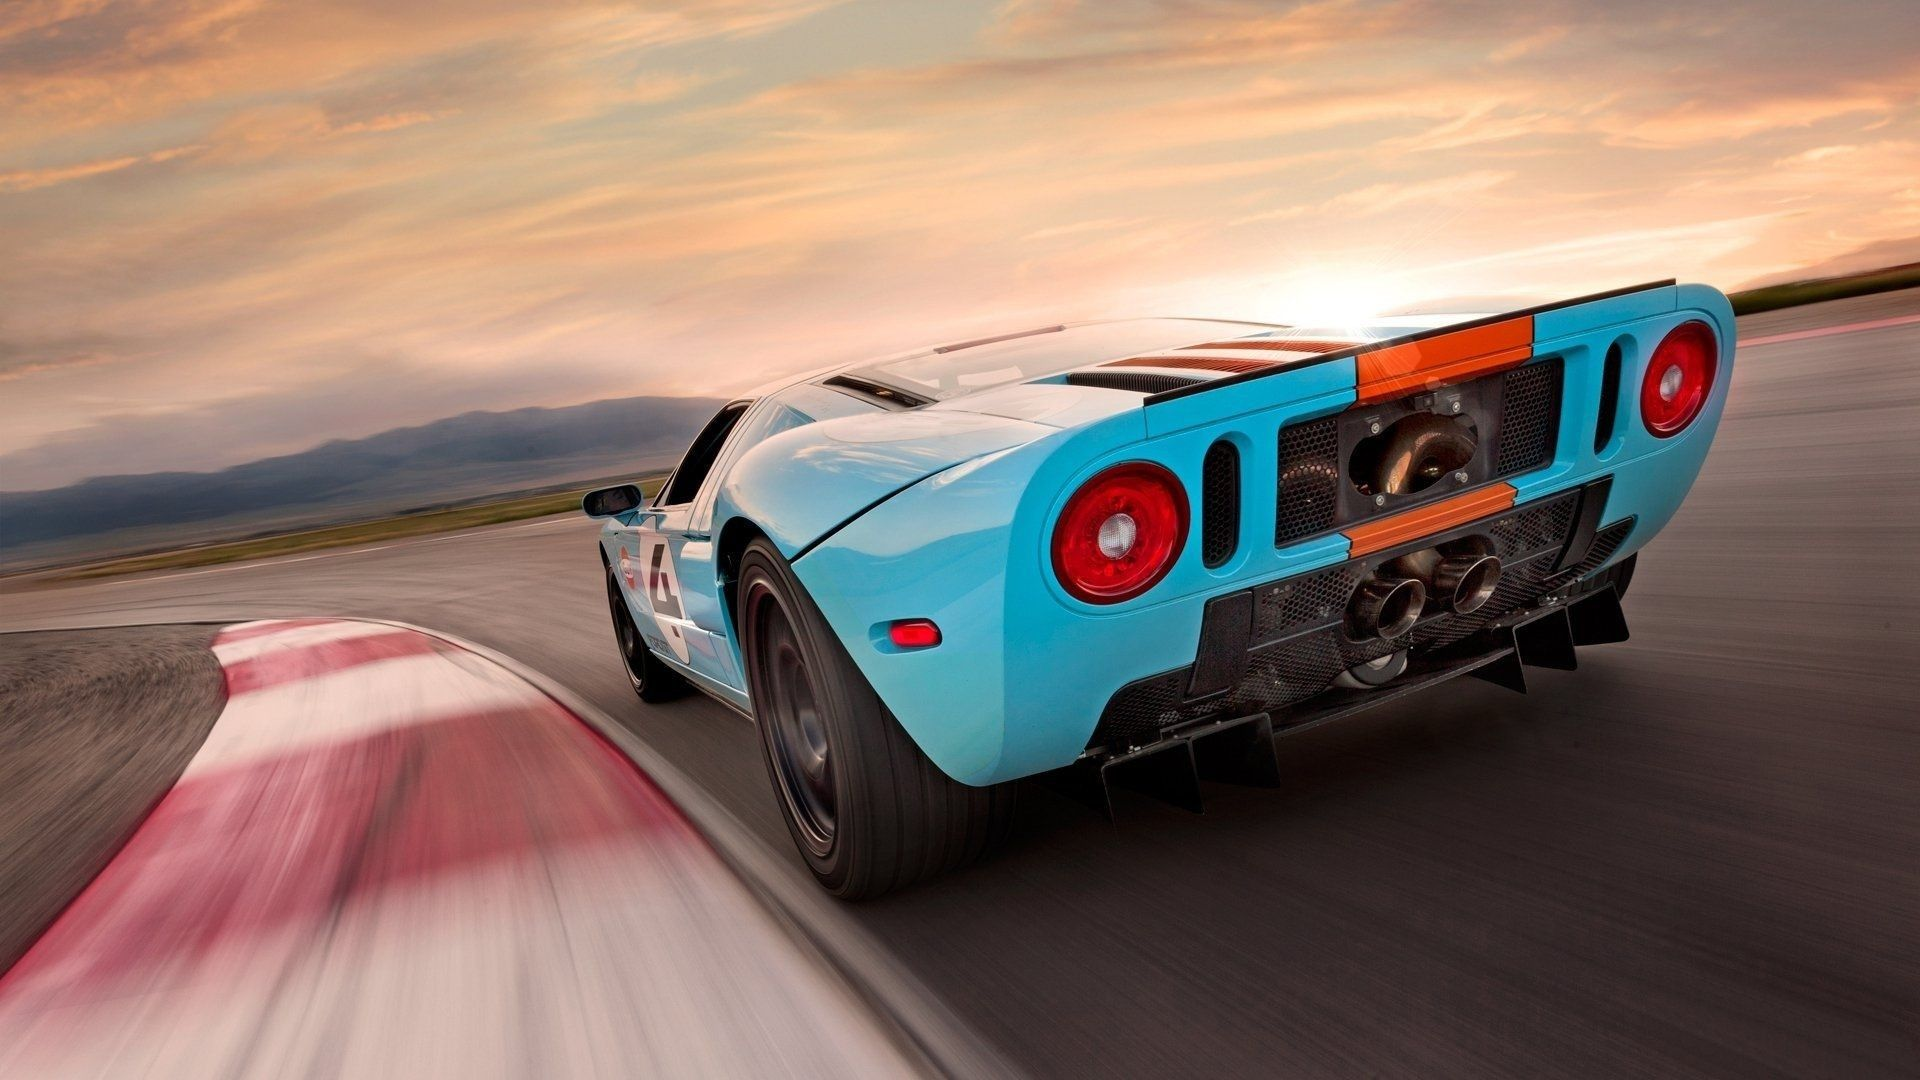 Pin By Ernesto Barrueta On Wallpapers Ford Gt Ford Gt40 Ford Gt Gulf